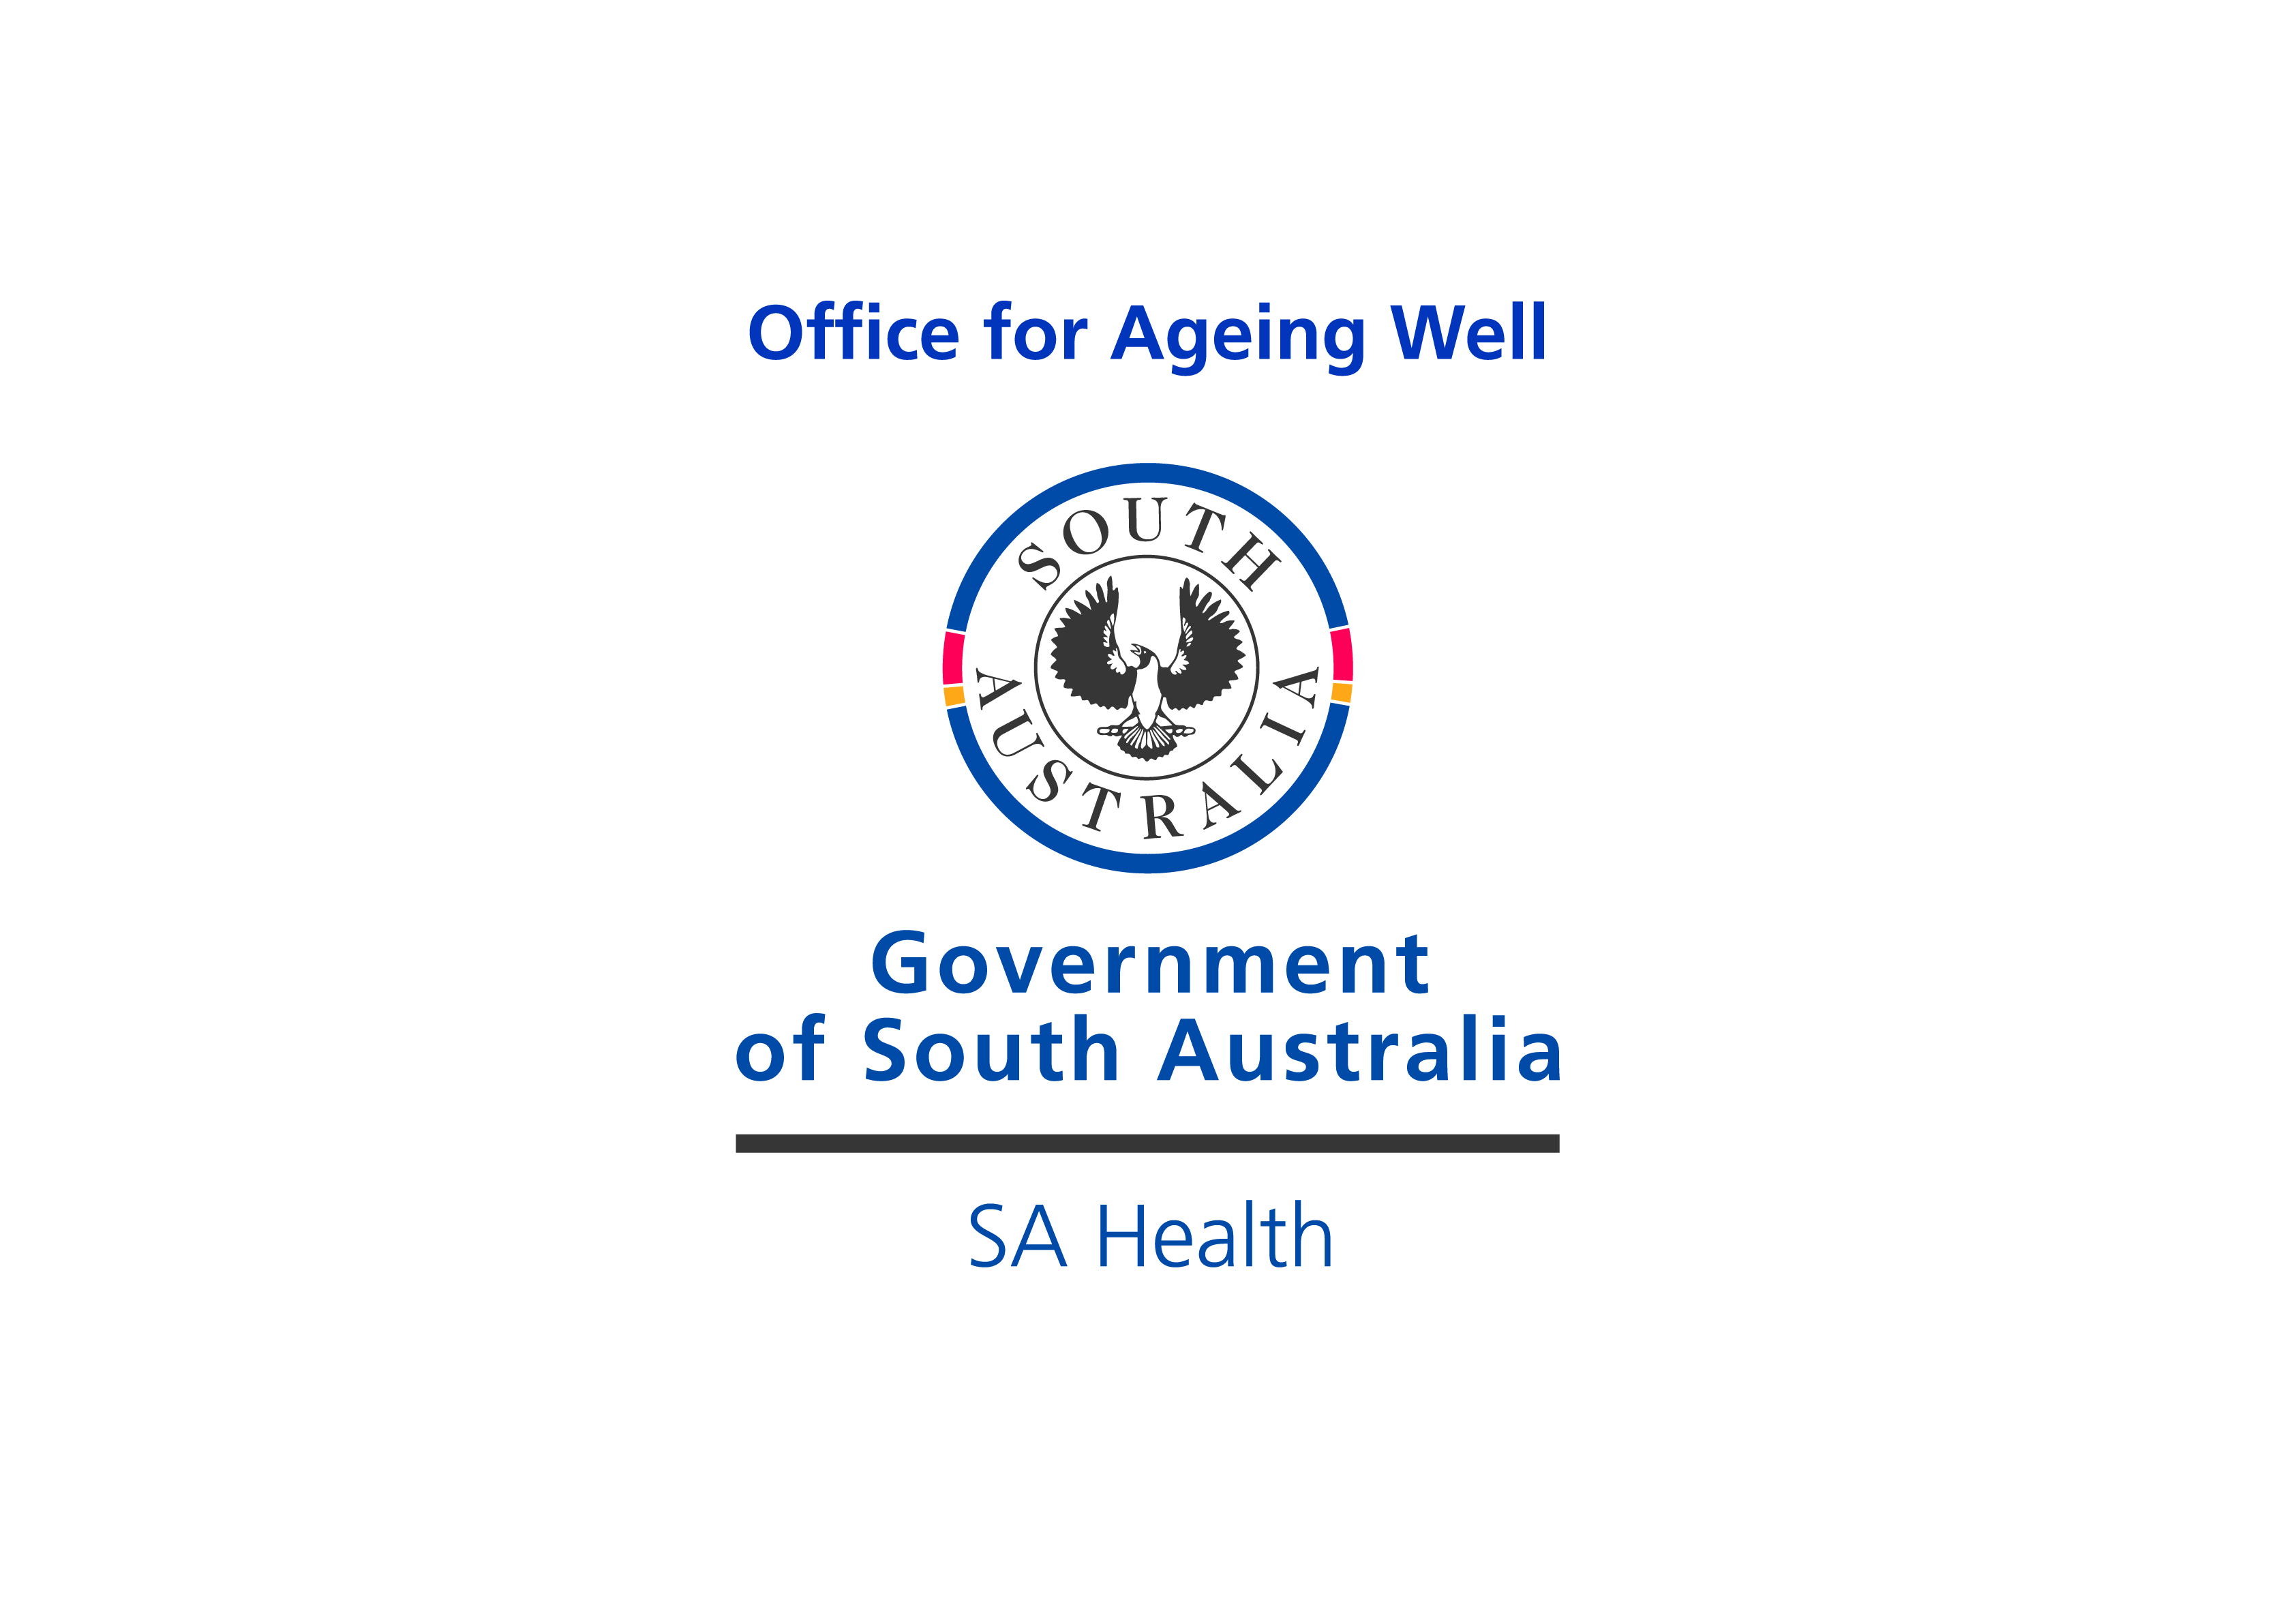 Office for Ageing Well Logo 2